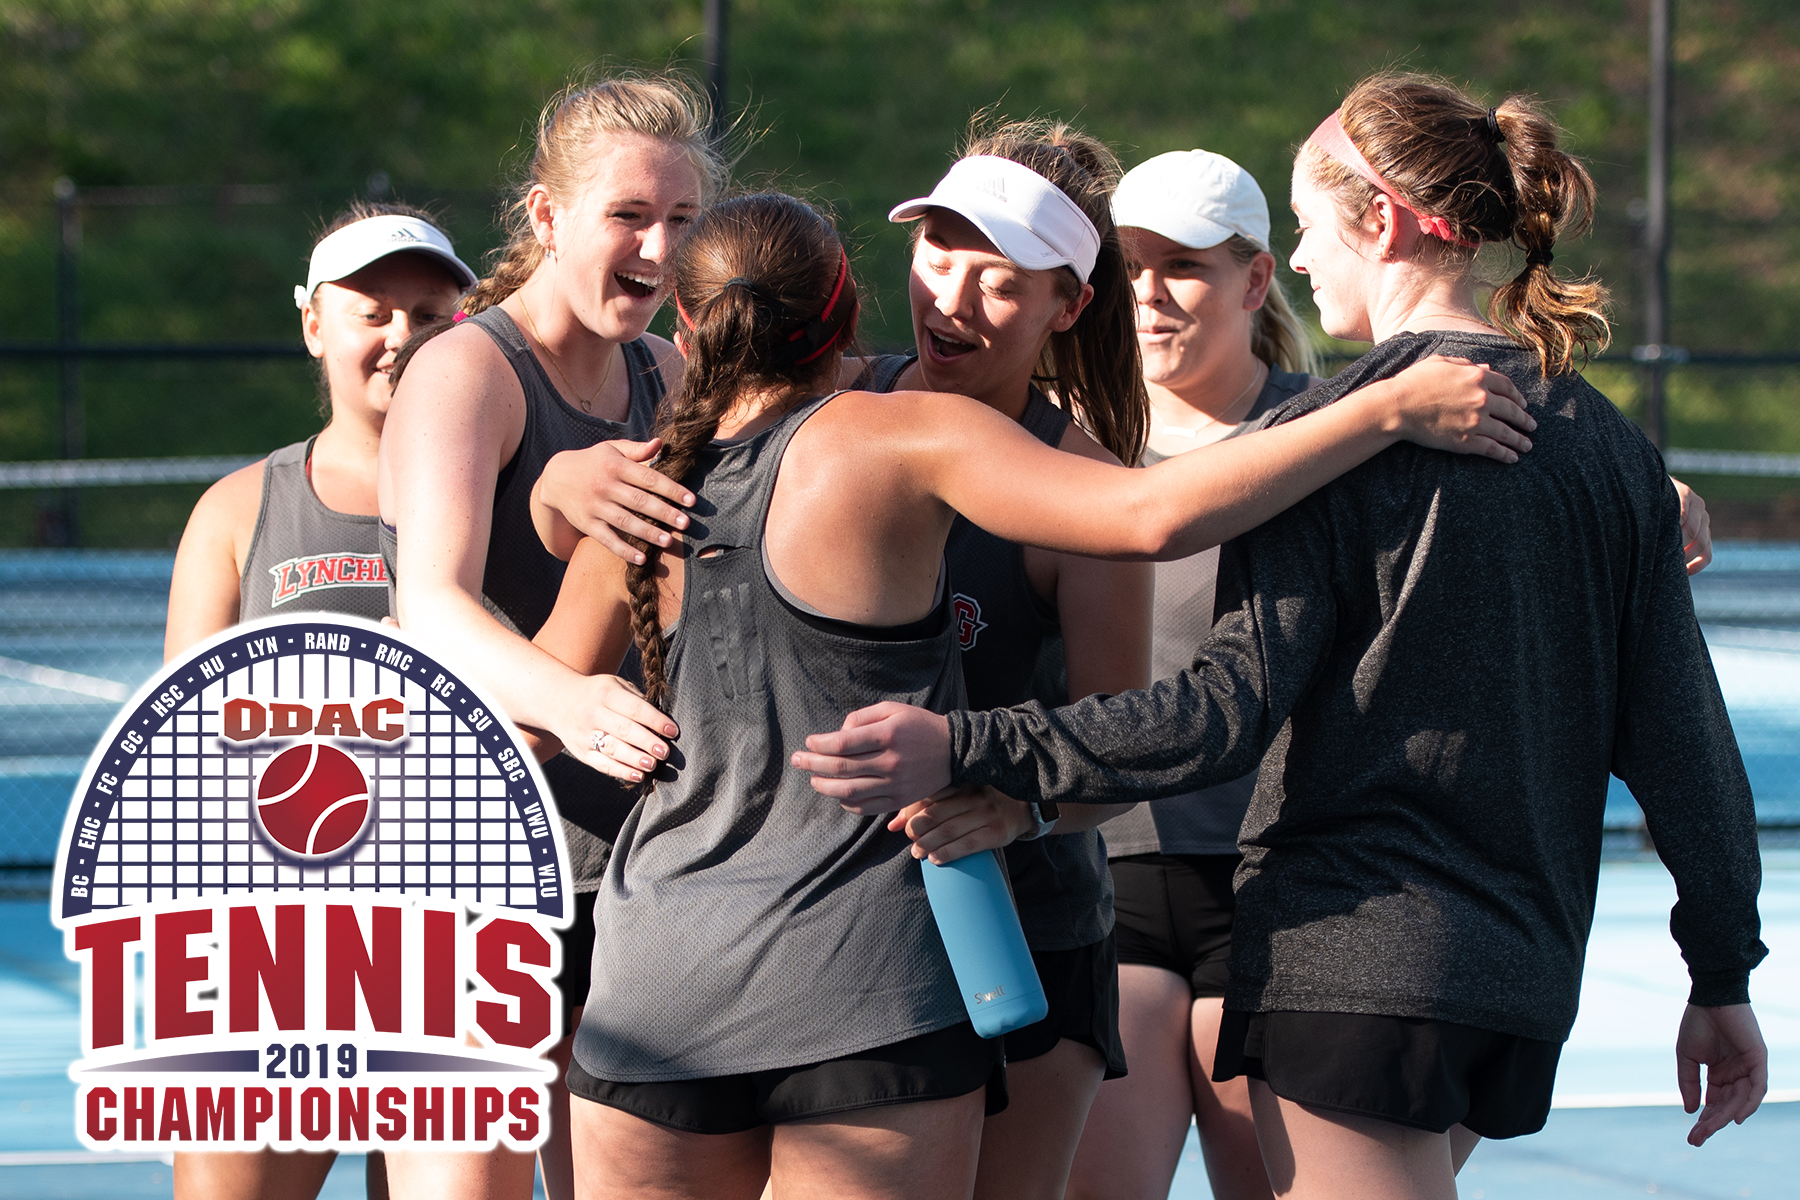 Lynchburg women's tennis celebrates a win. ODAC tennis title logo in left bottom corner